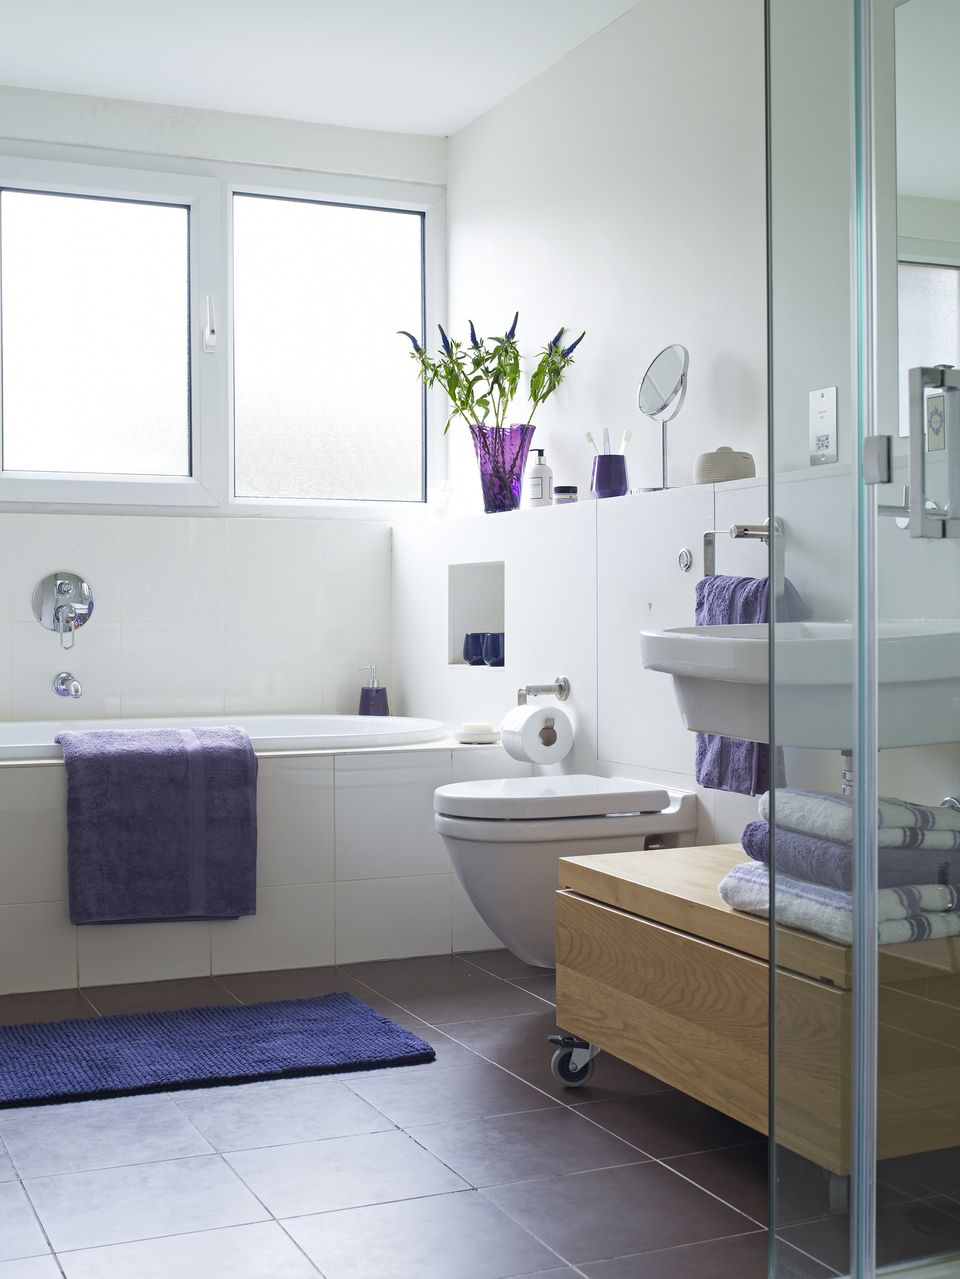 Small bathroom with purple accents